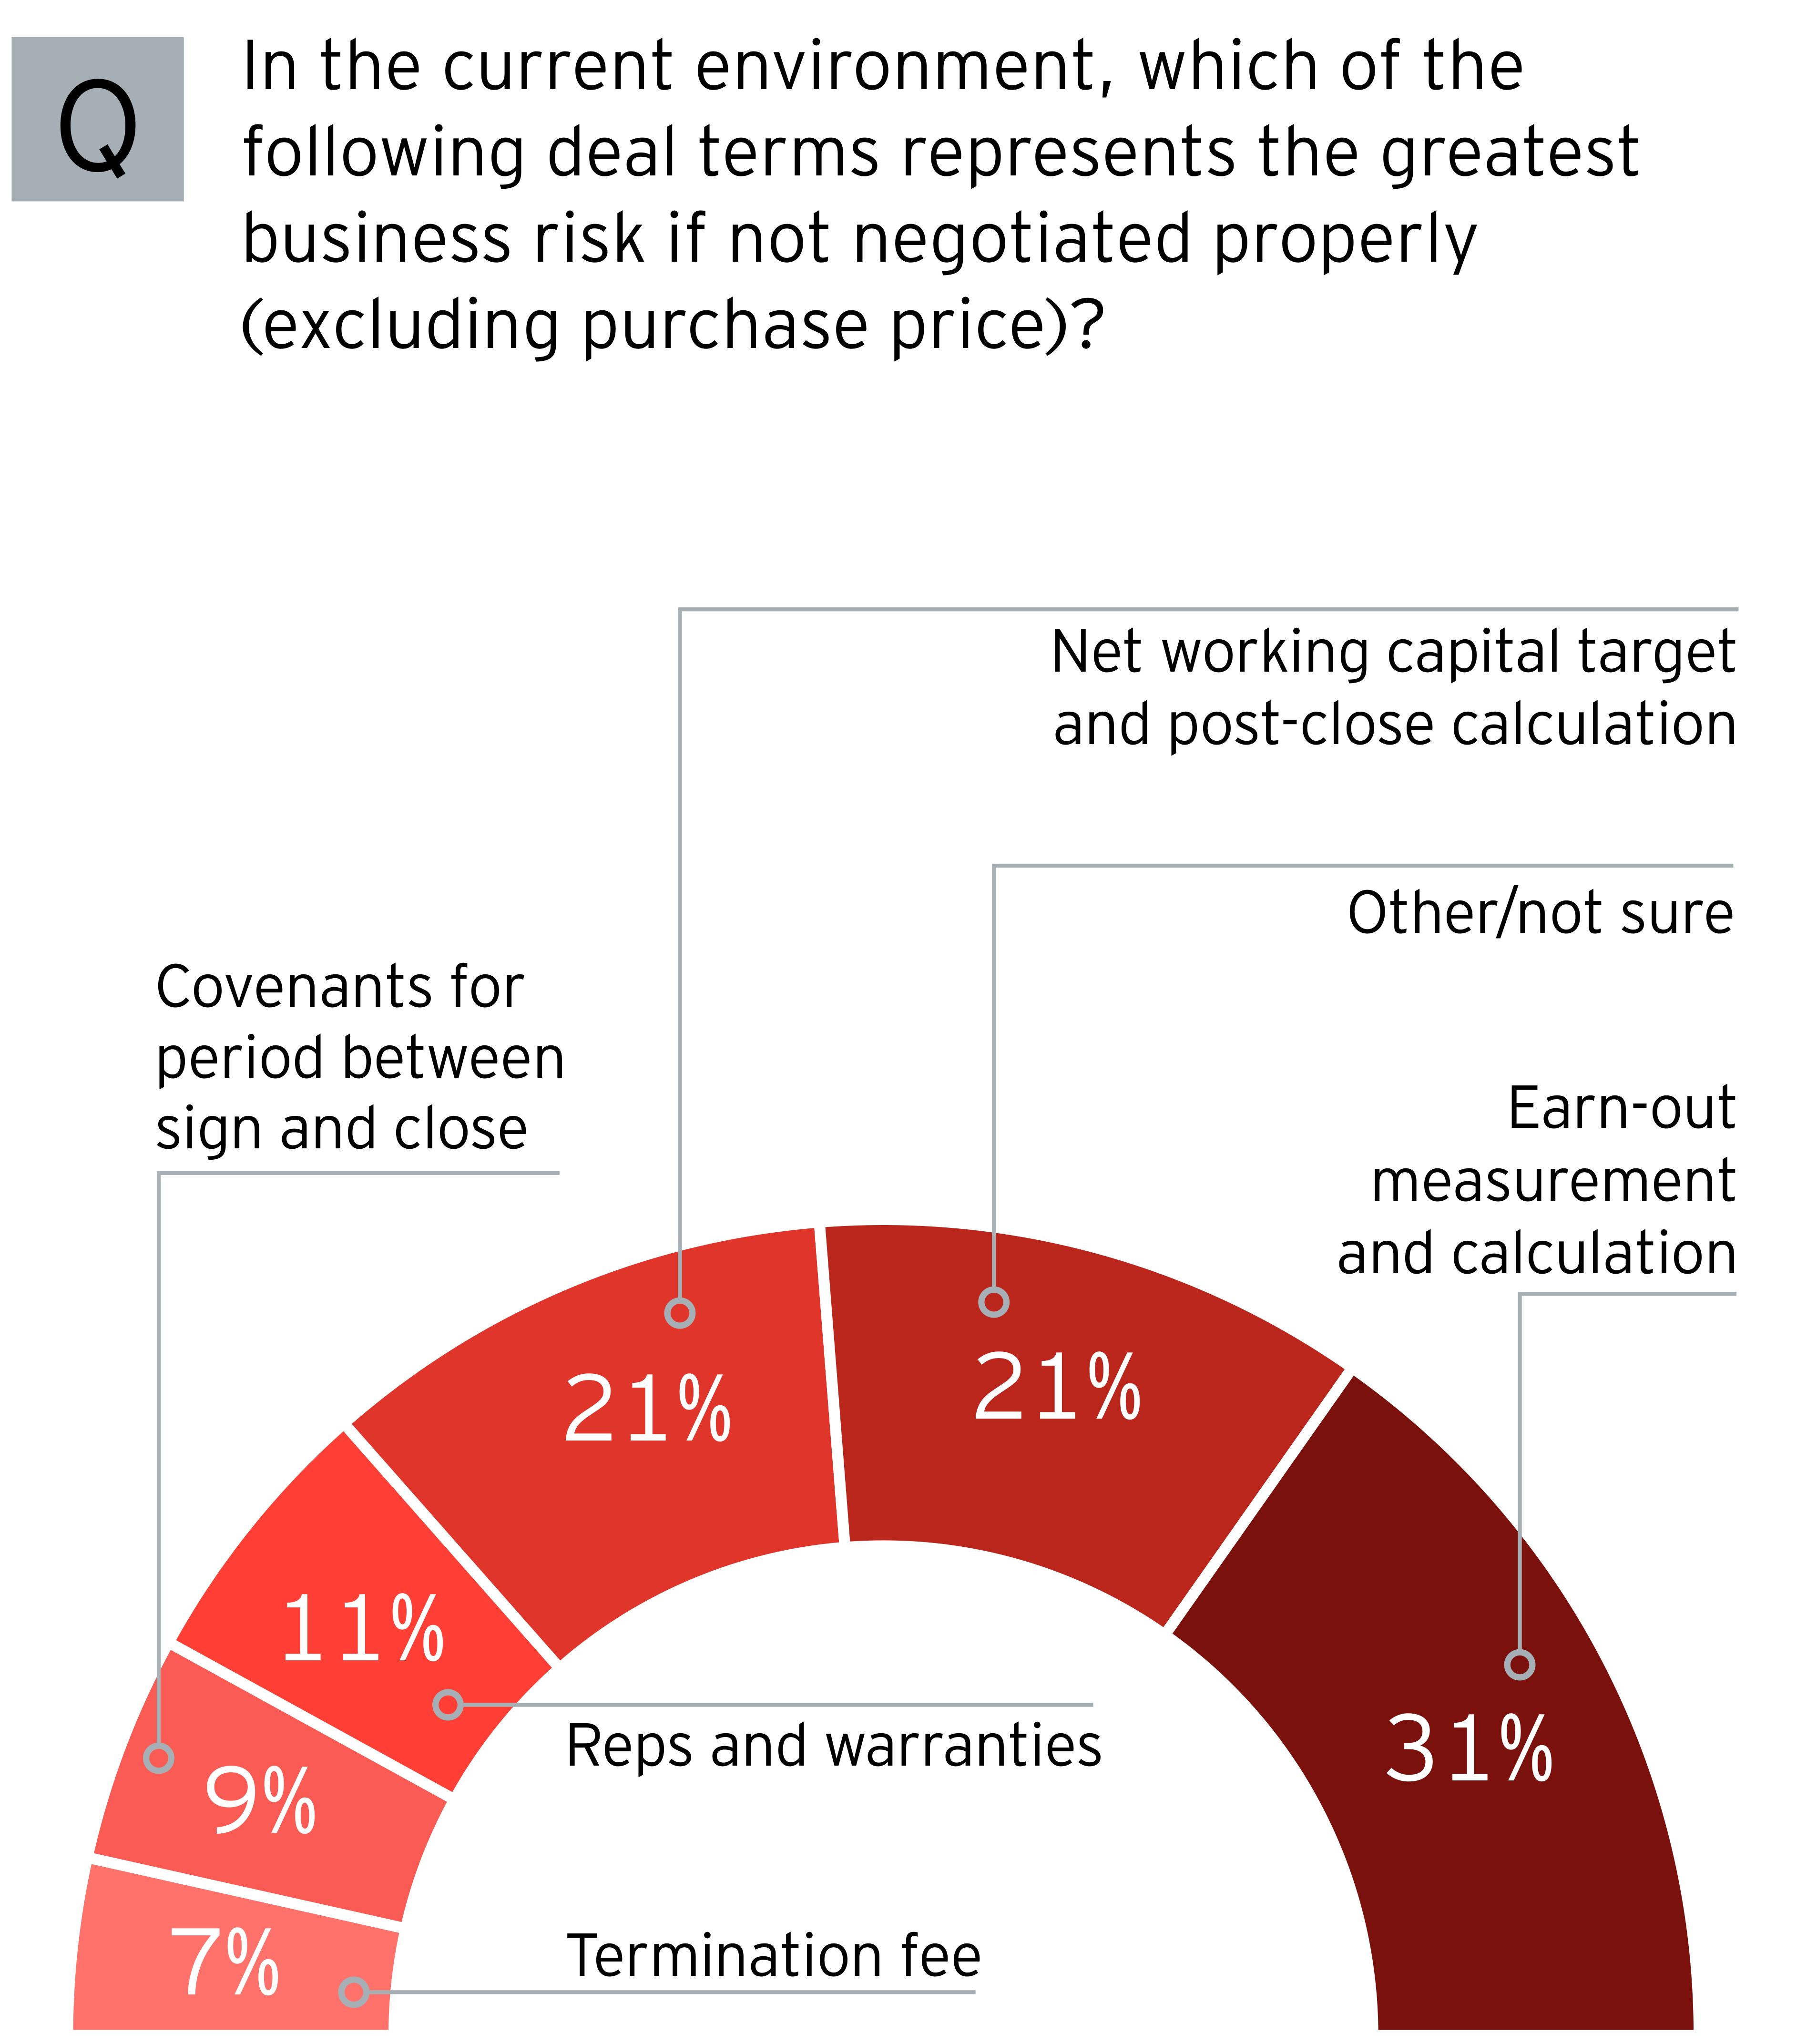 EY - Deal terms represents thegreatest business risk